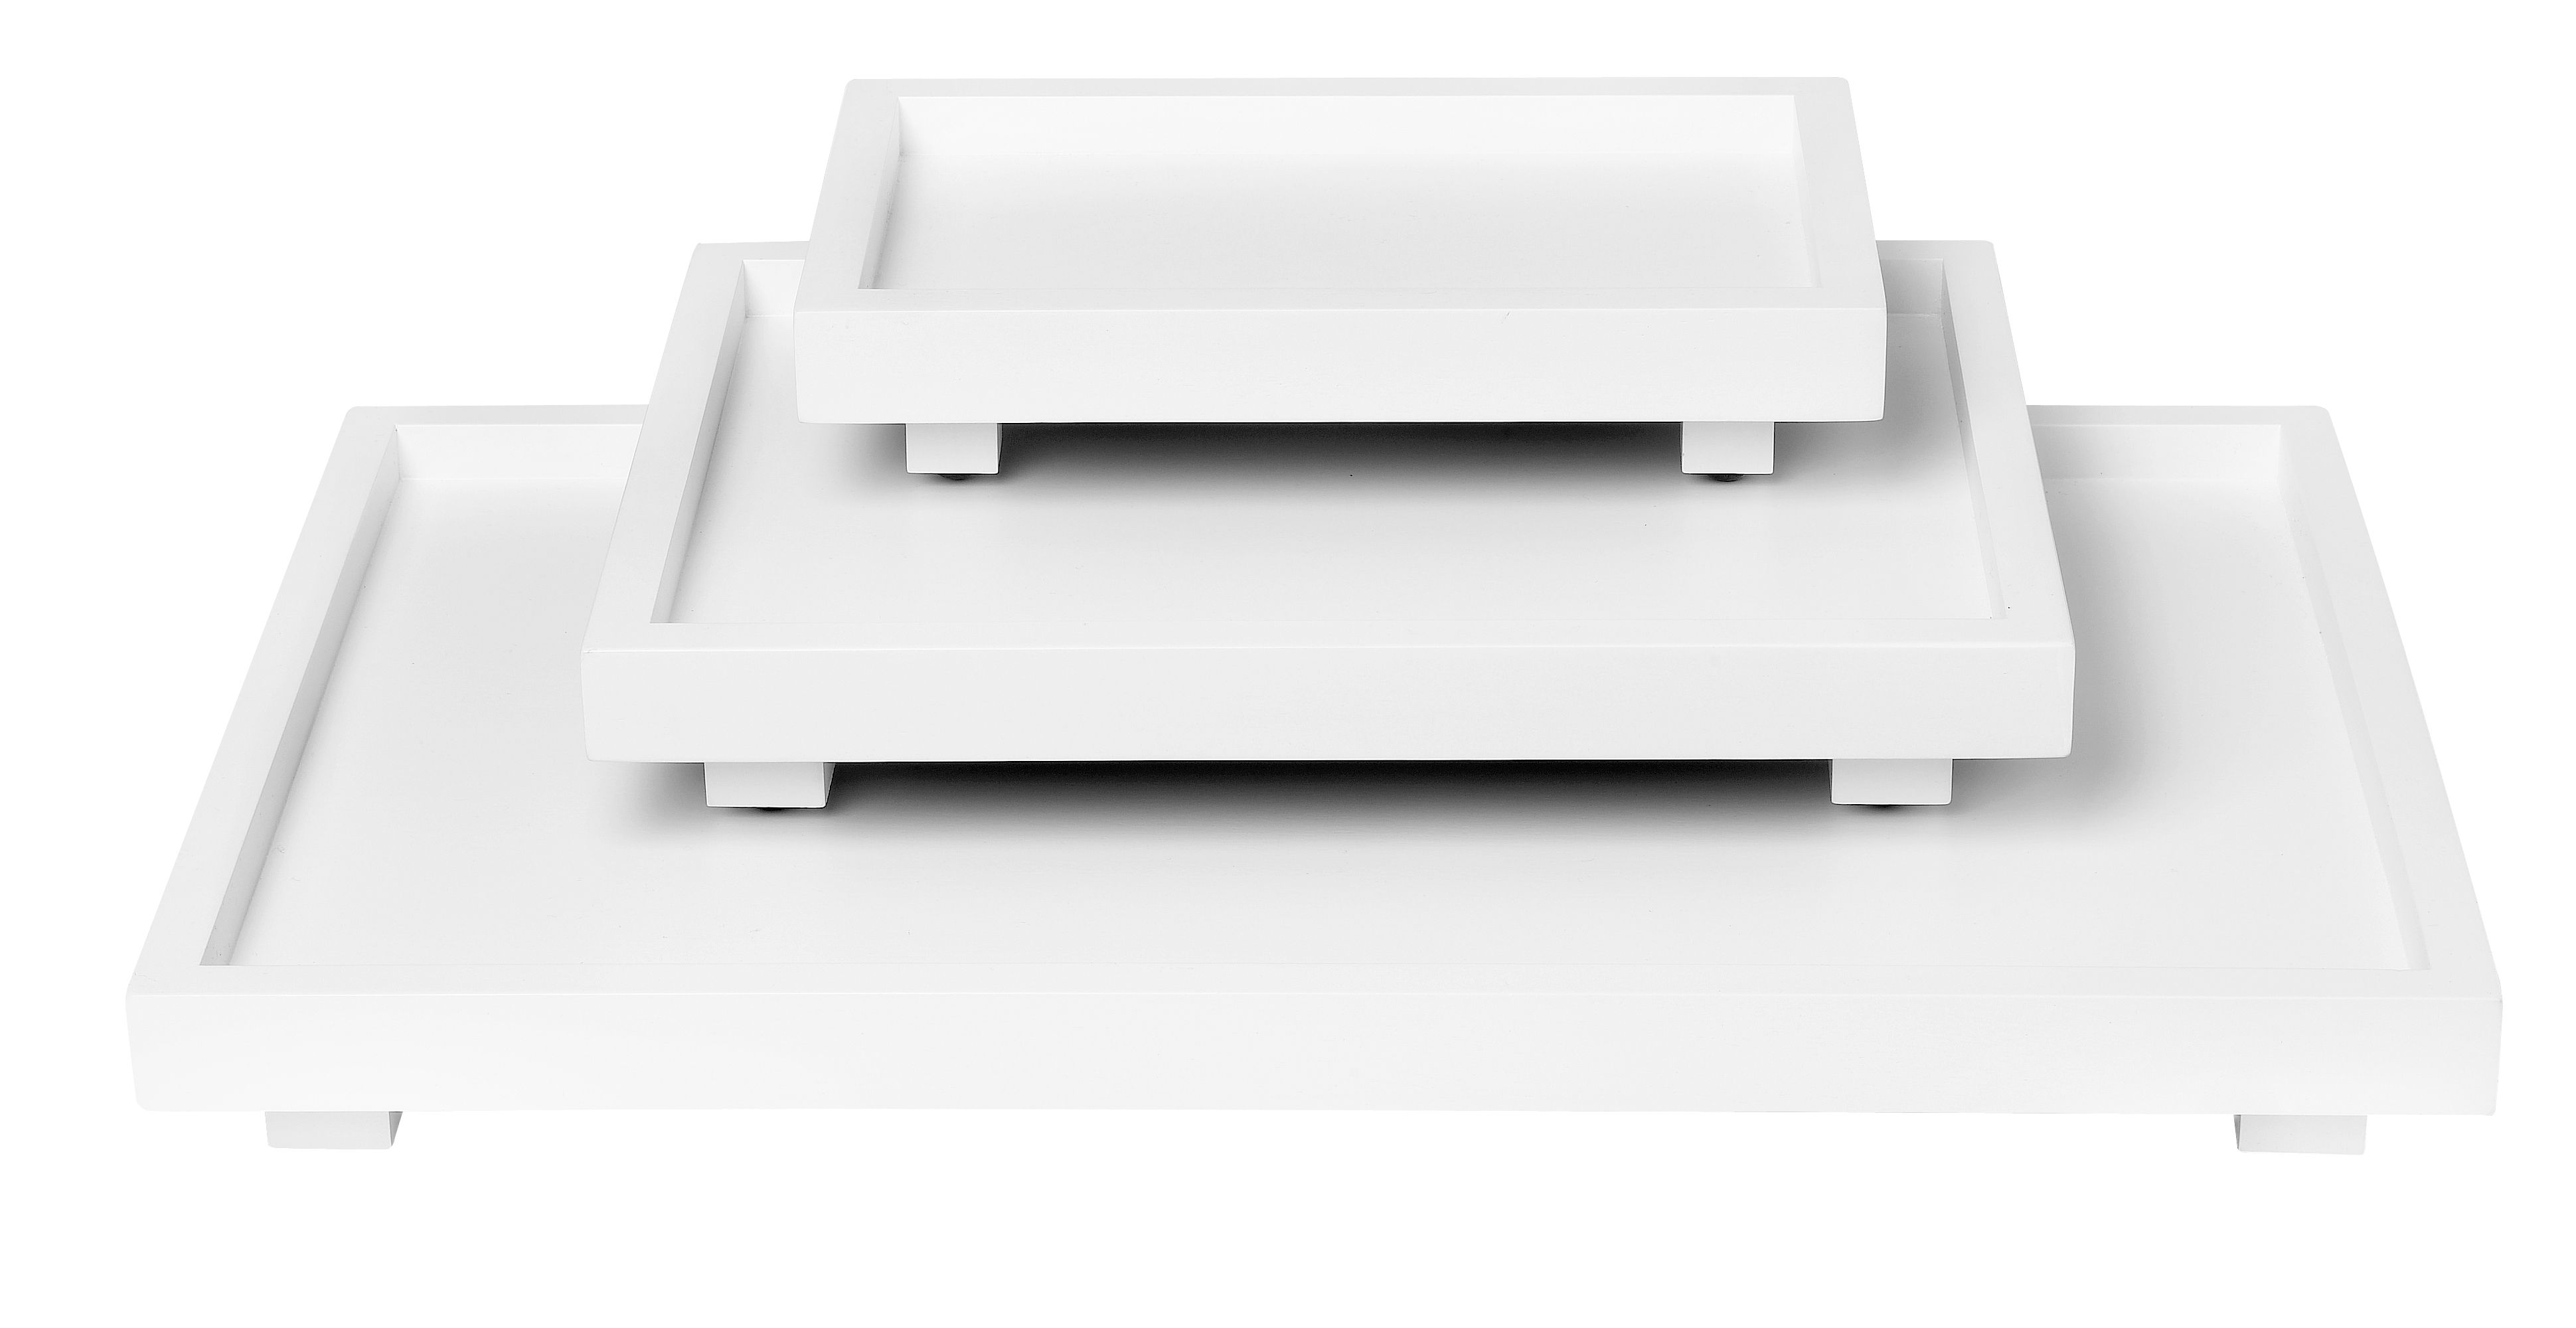 trays by design house stockholm - Dinnerware Design House Stockholm